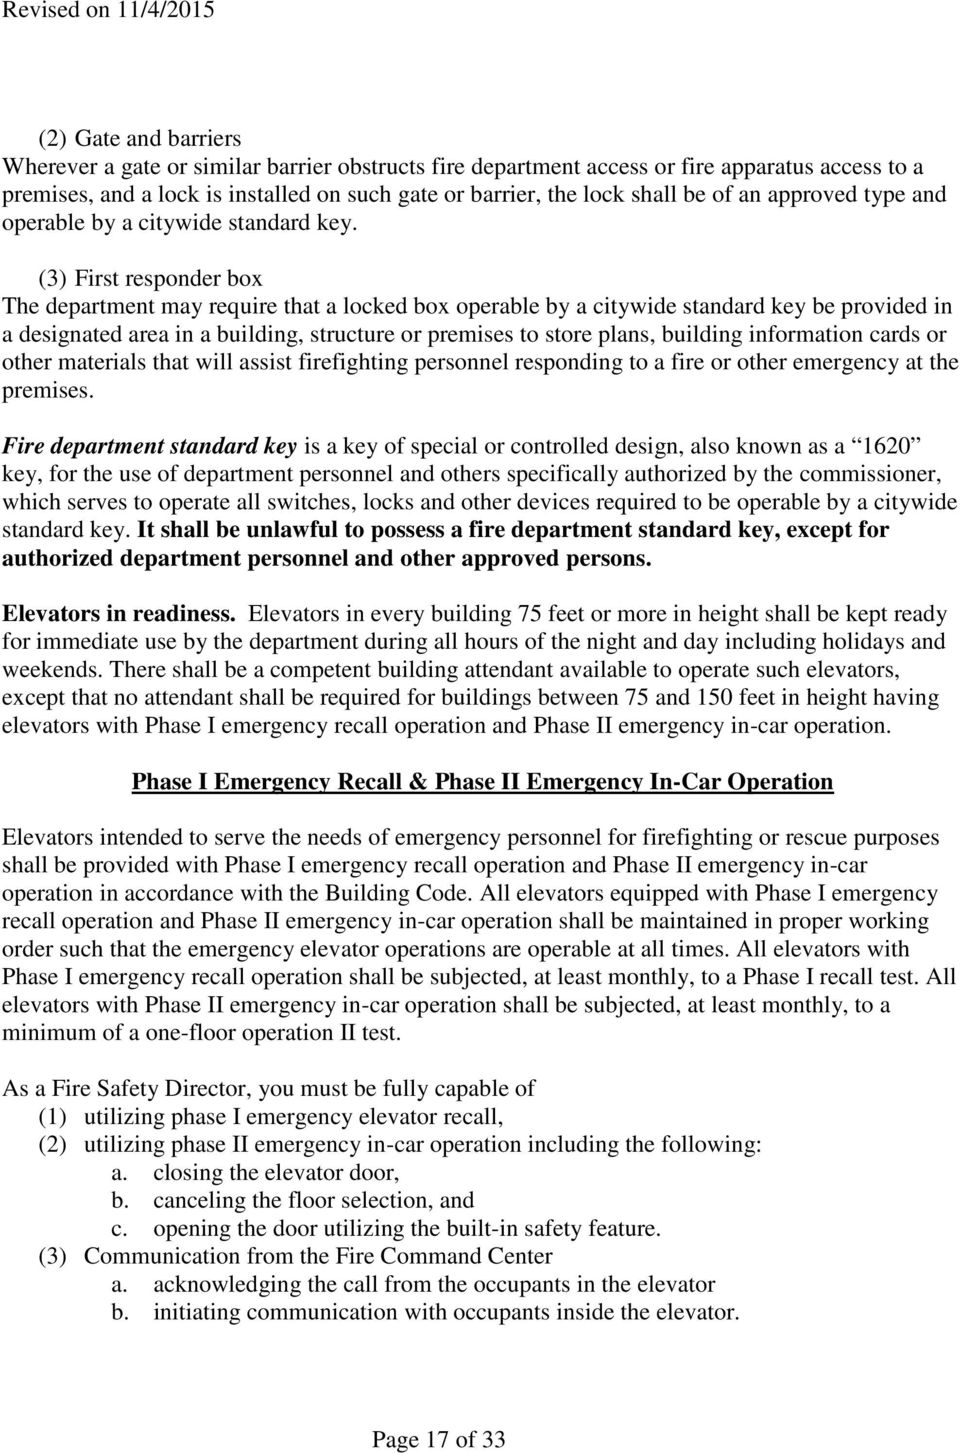 (3) First responder box The department may require that a locked box operable by a citywide standard key be provided in a designated area in a building, structure or premises to store plans, building